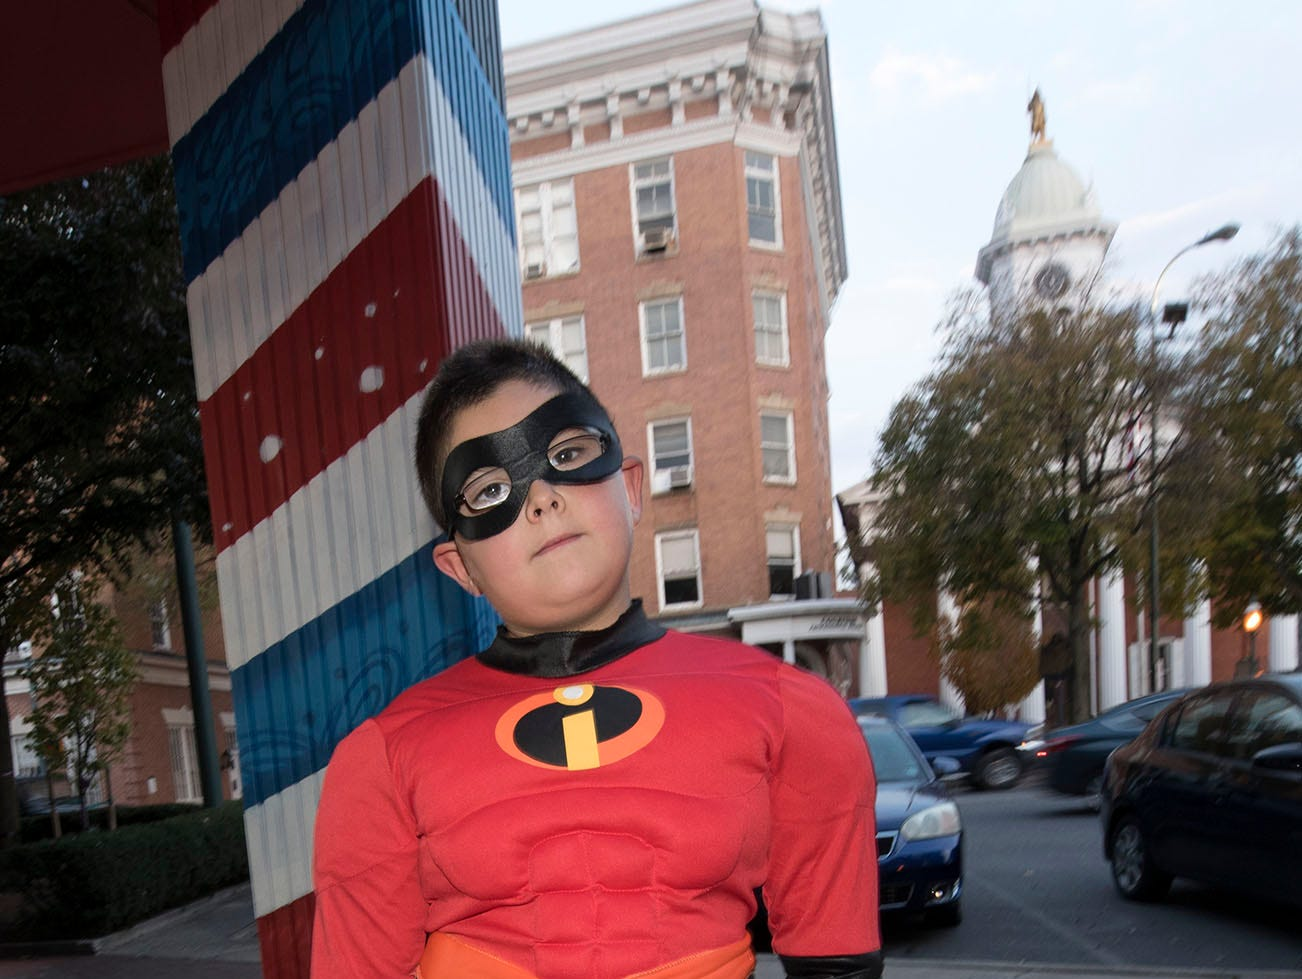 Jack Killinger, 7, is quite incredible as he walks through downtown, Wednesday night.